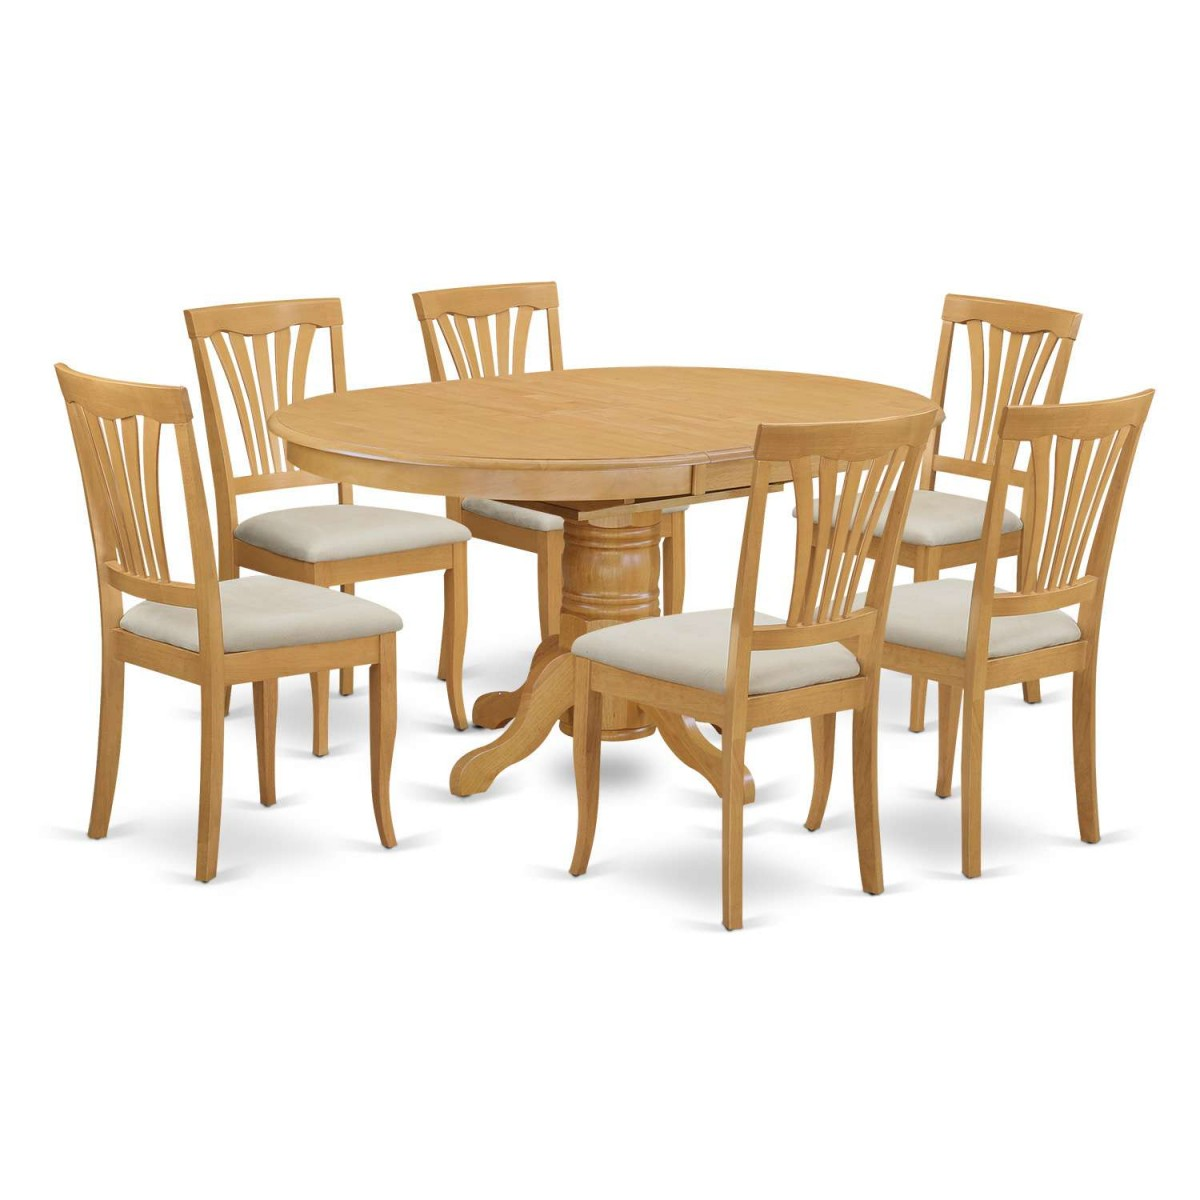 East West Furniture Avon 7 Piece Dining Table Set